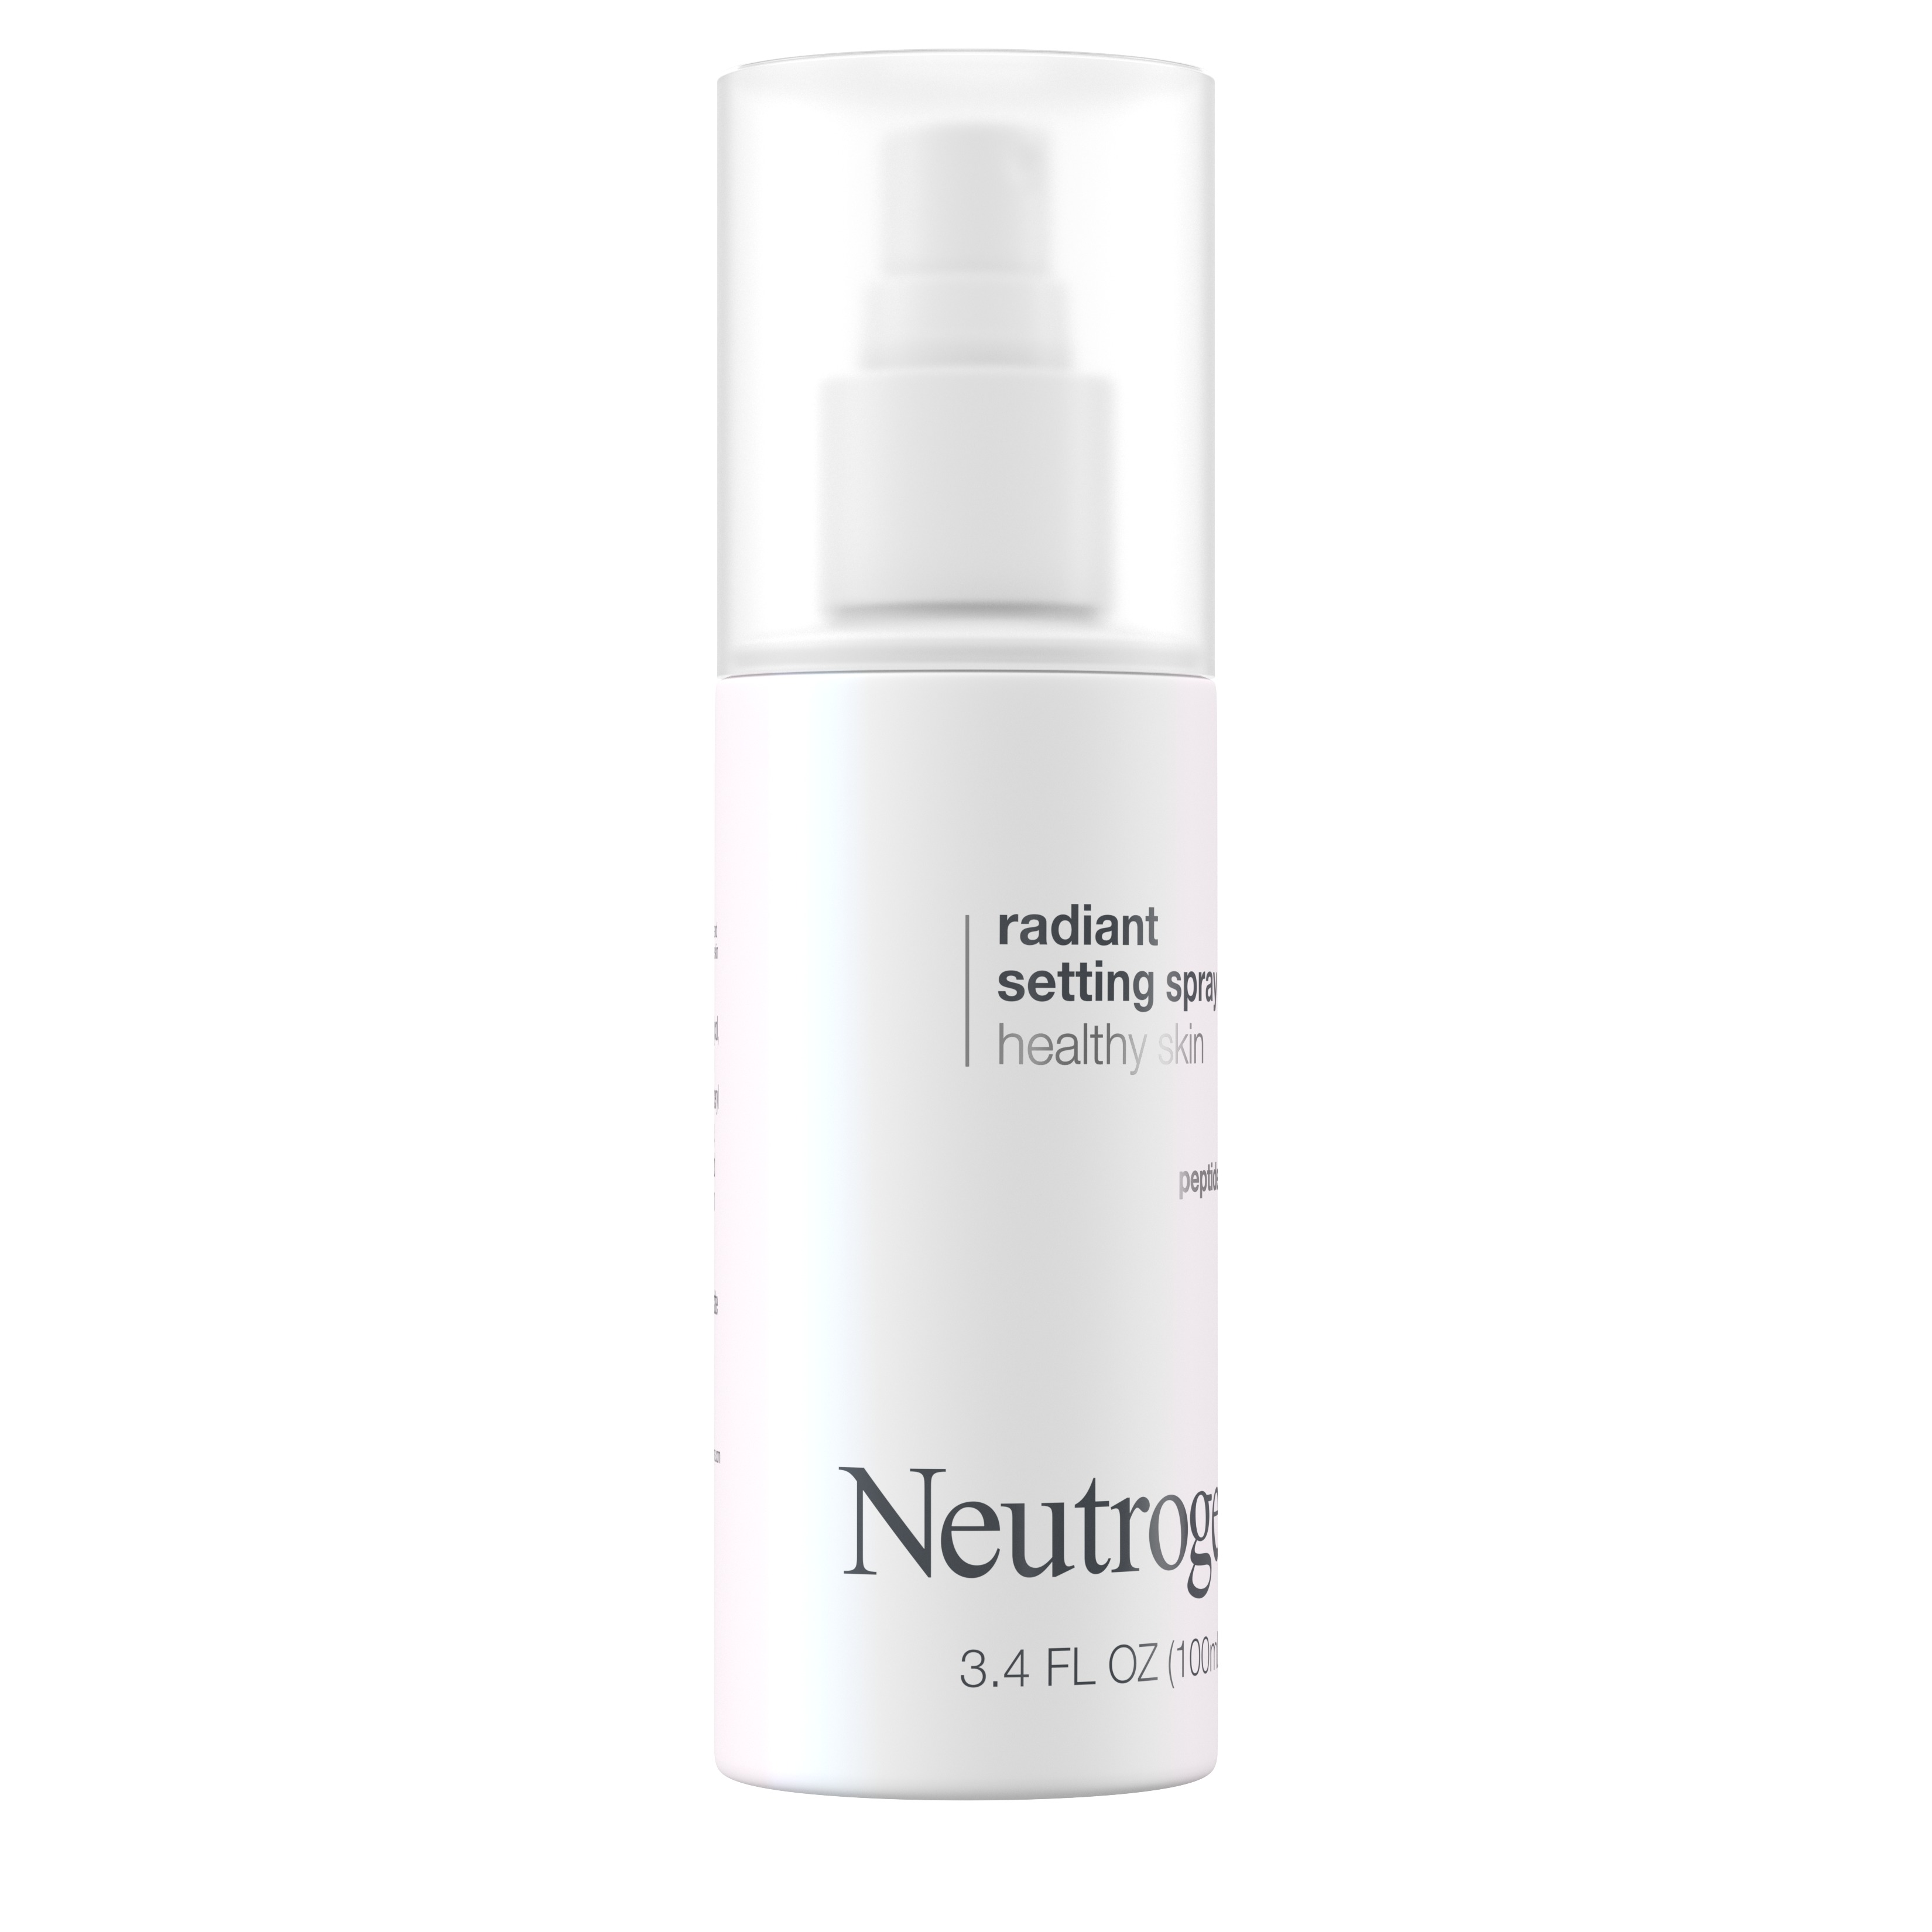 Radiant Makeup Setting Spray With Peptides by Neutrogena #19